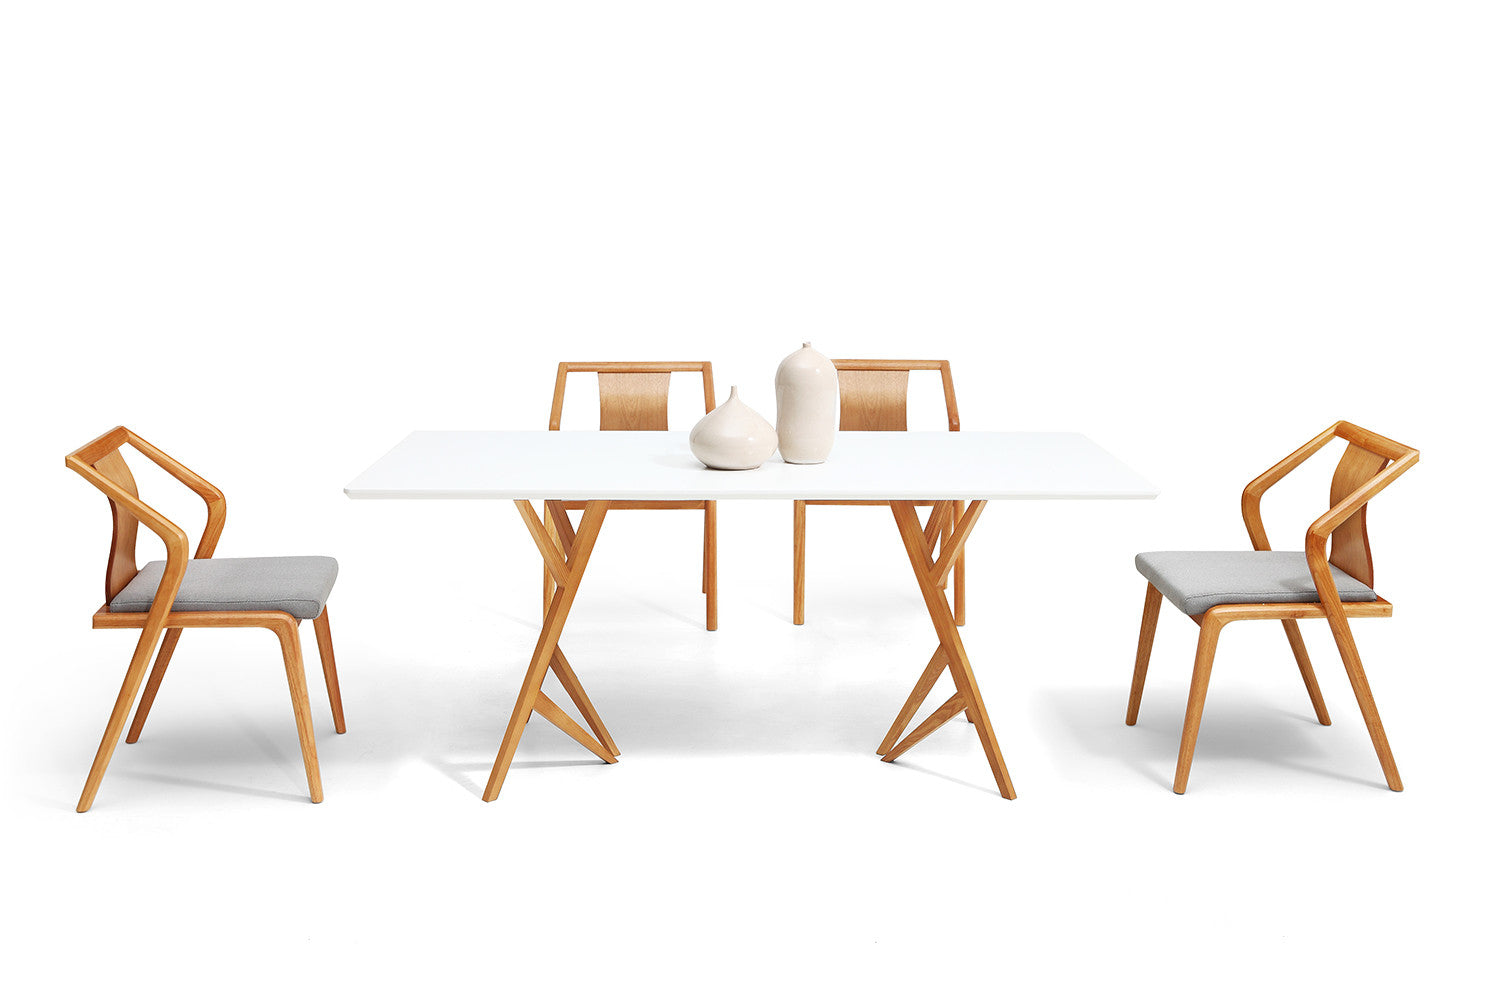 Table de salle manger design scandinave vispa dewarens for Table salle a manger design